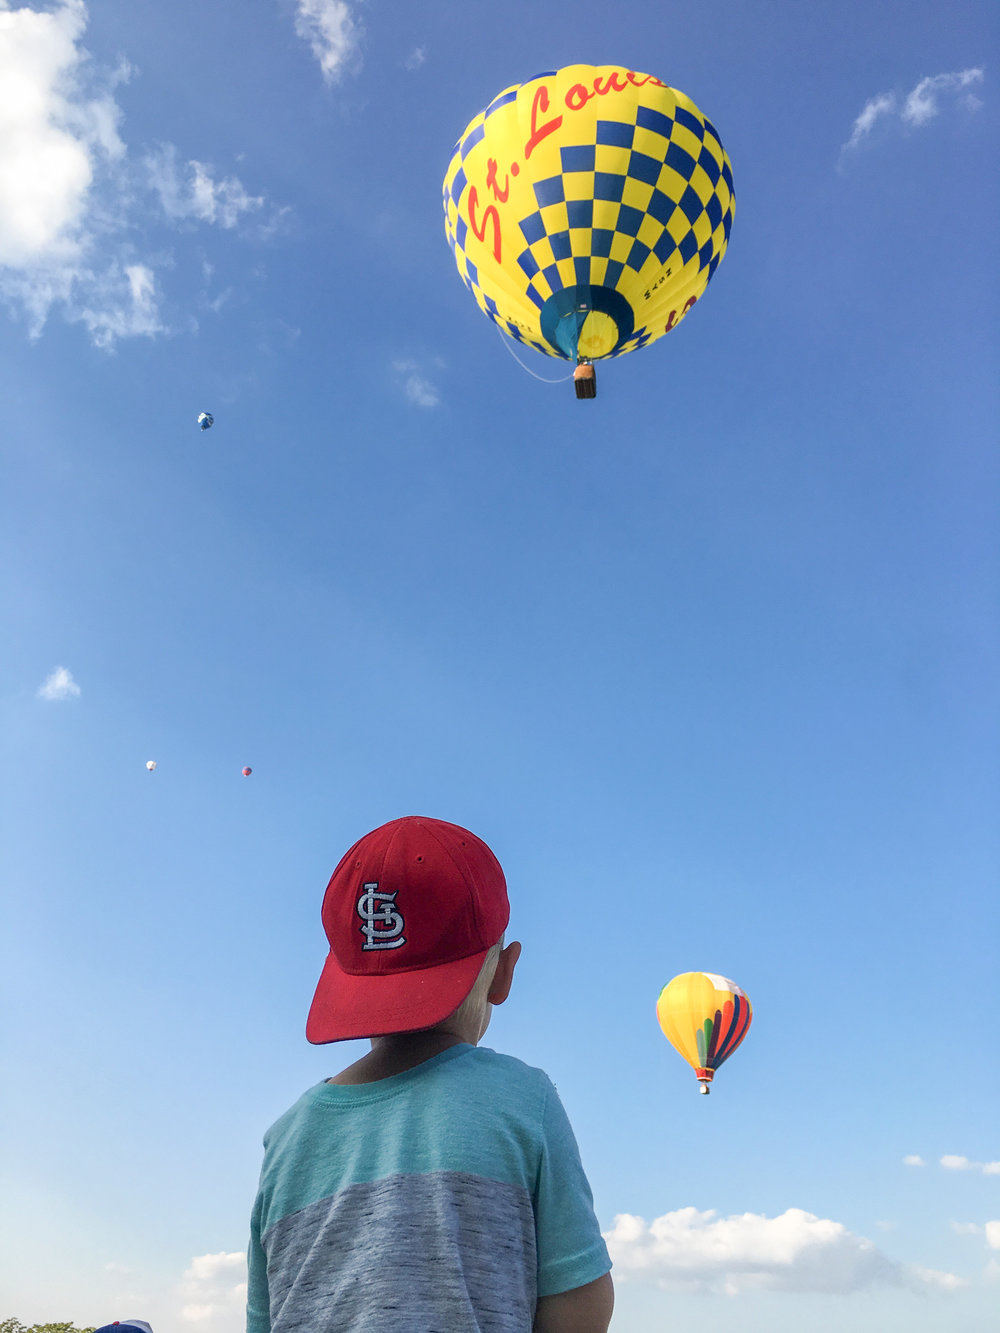 "@mollymarroquin : For every balloon takeoff: jump up and down, clap, and shriek ""there it goes!"" #stl #balloonrace"